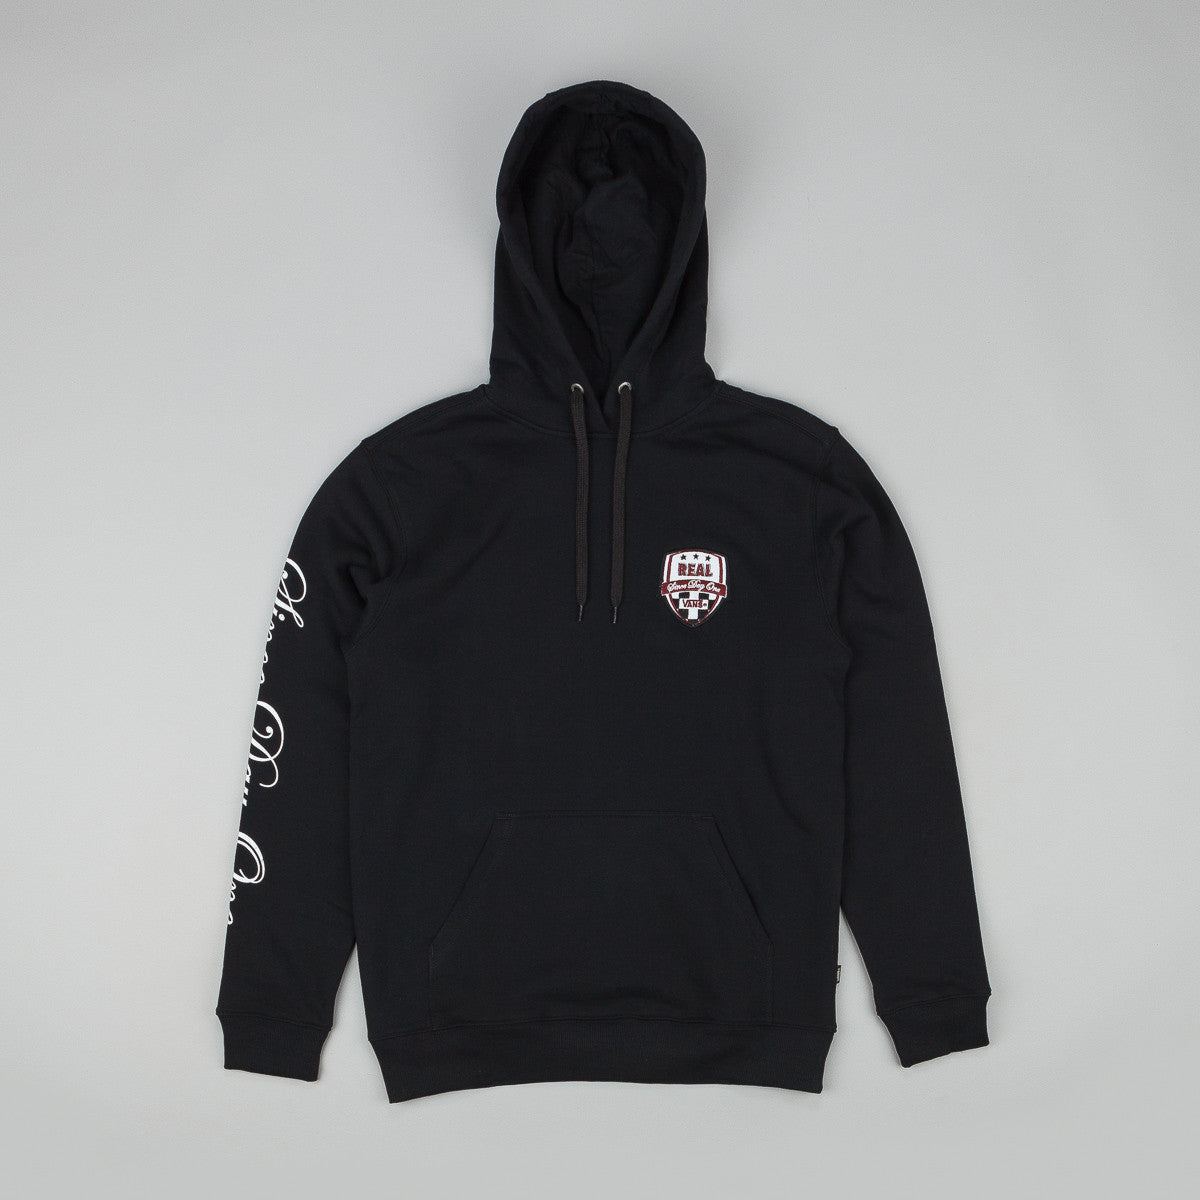 Vans X Real Hooded Sweatshirt Black